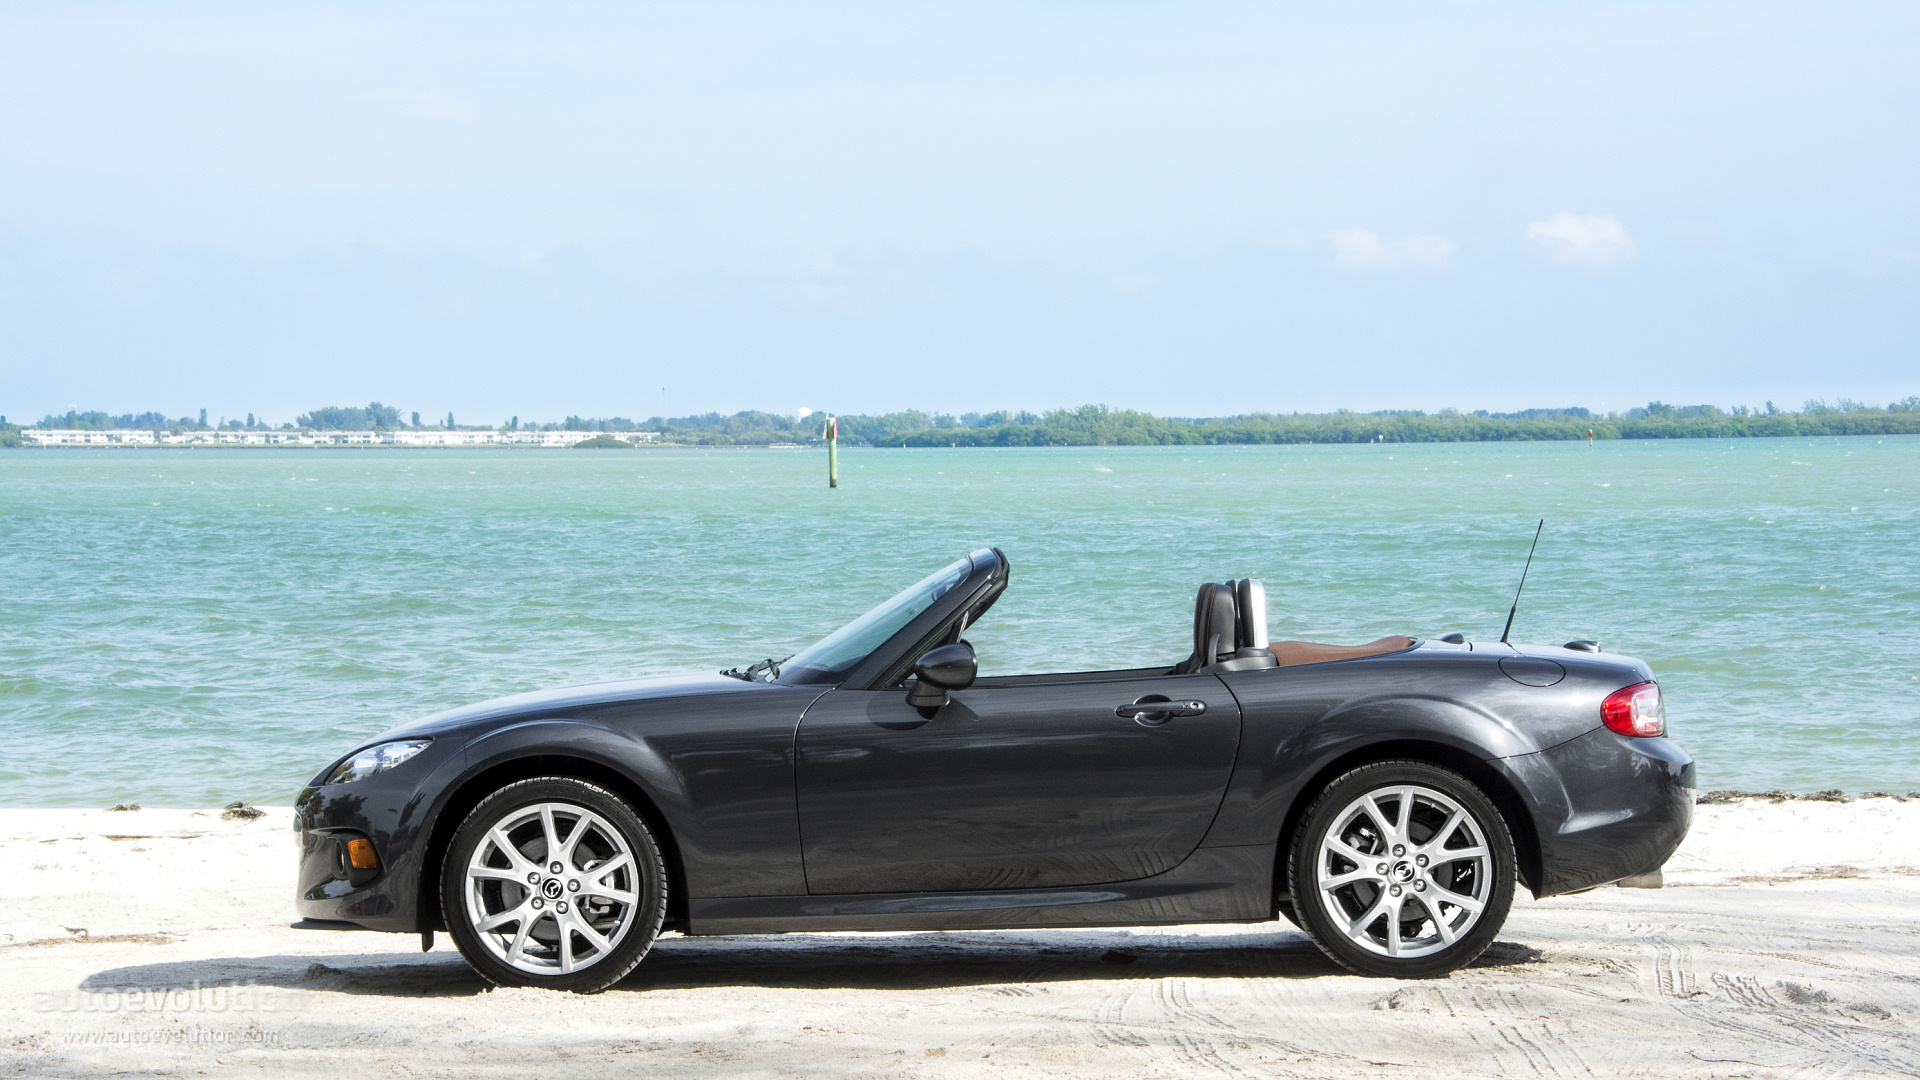 Free Download 2015 Mazda Mx 5 Miata Hd Wallpapers